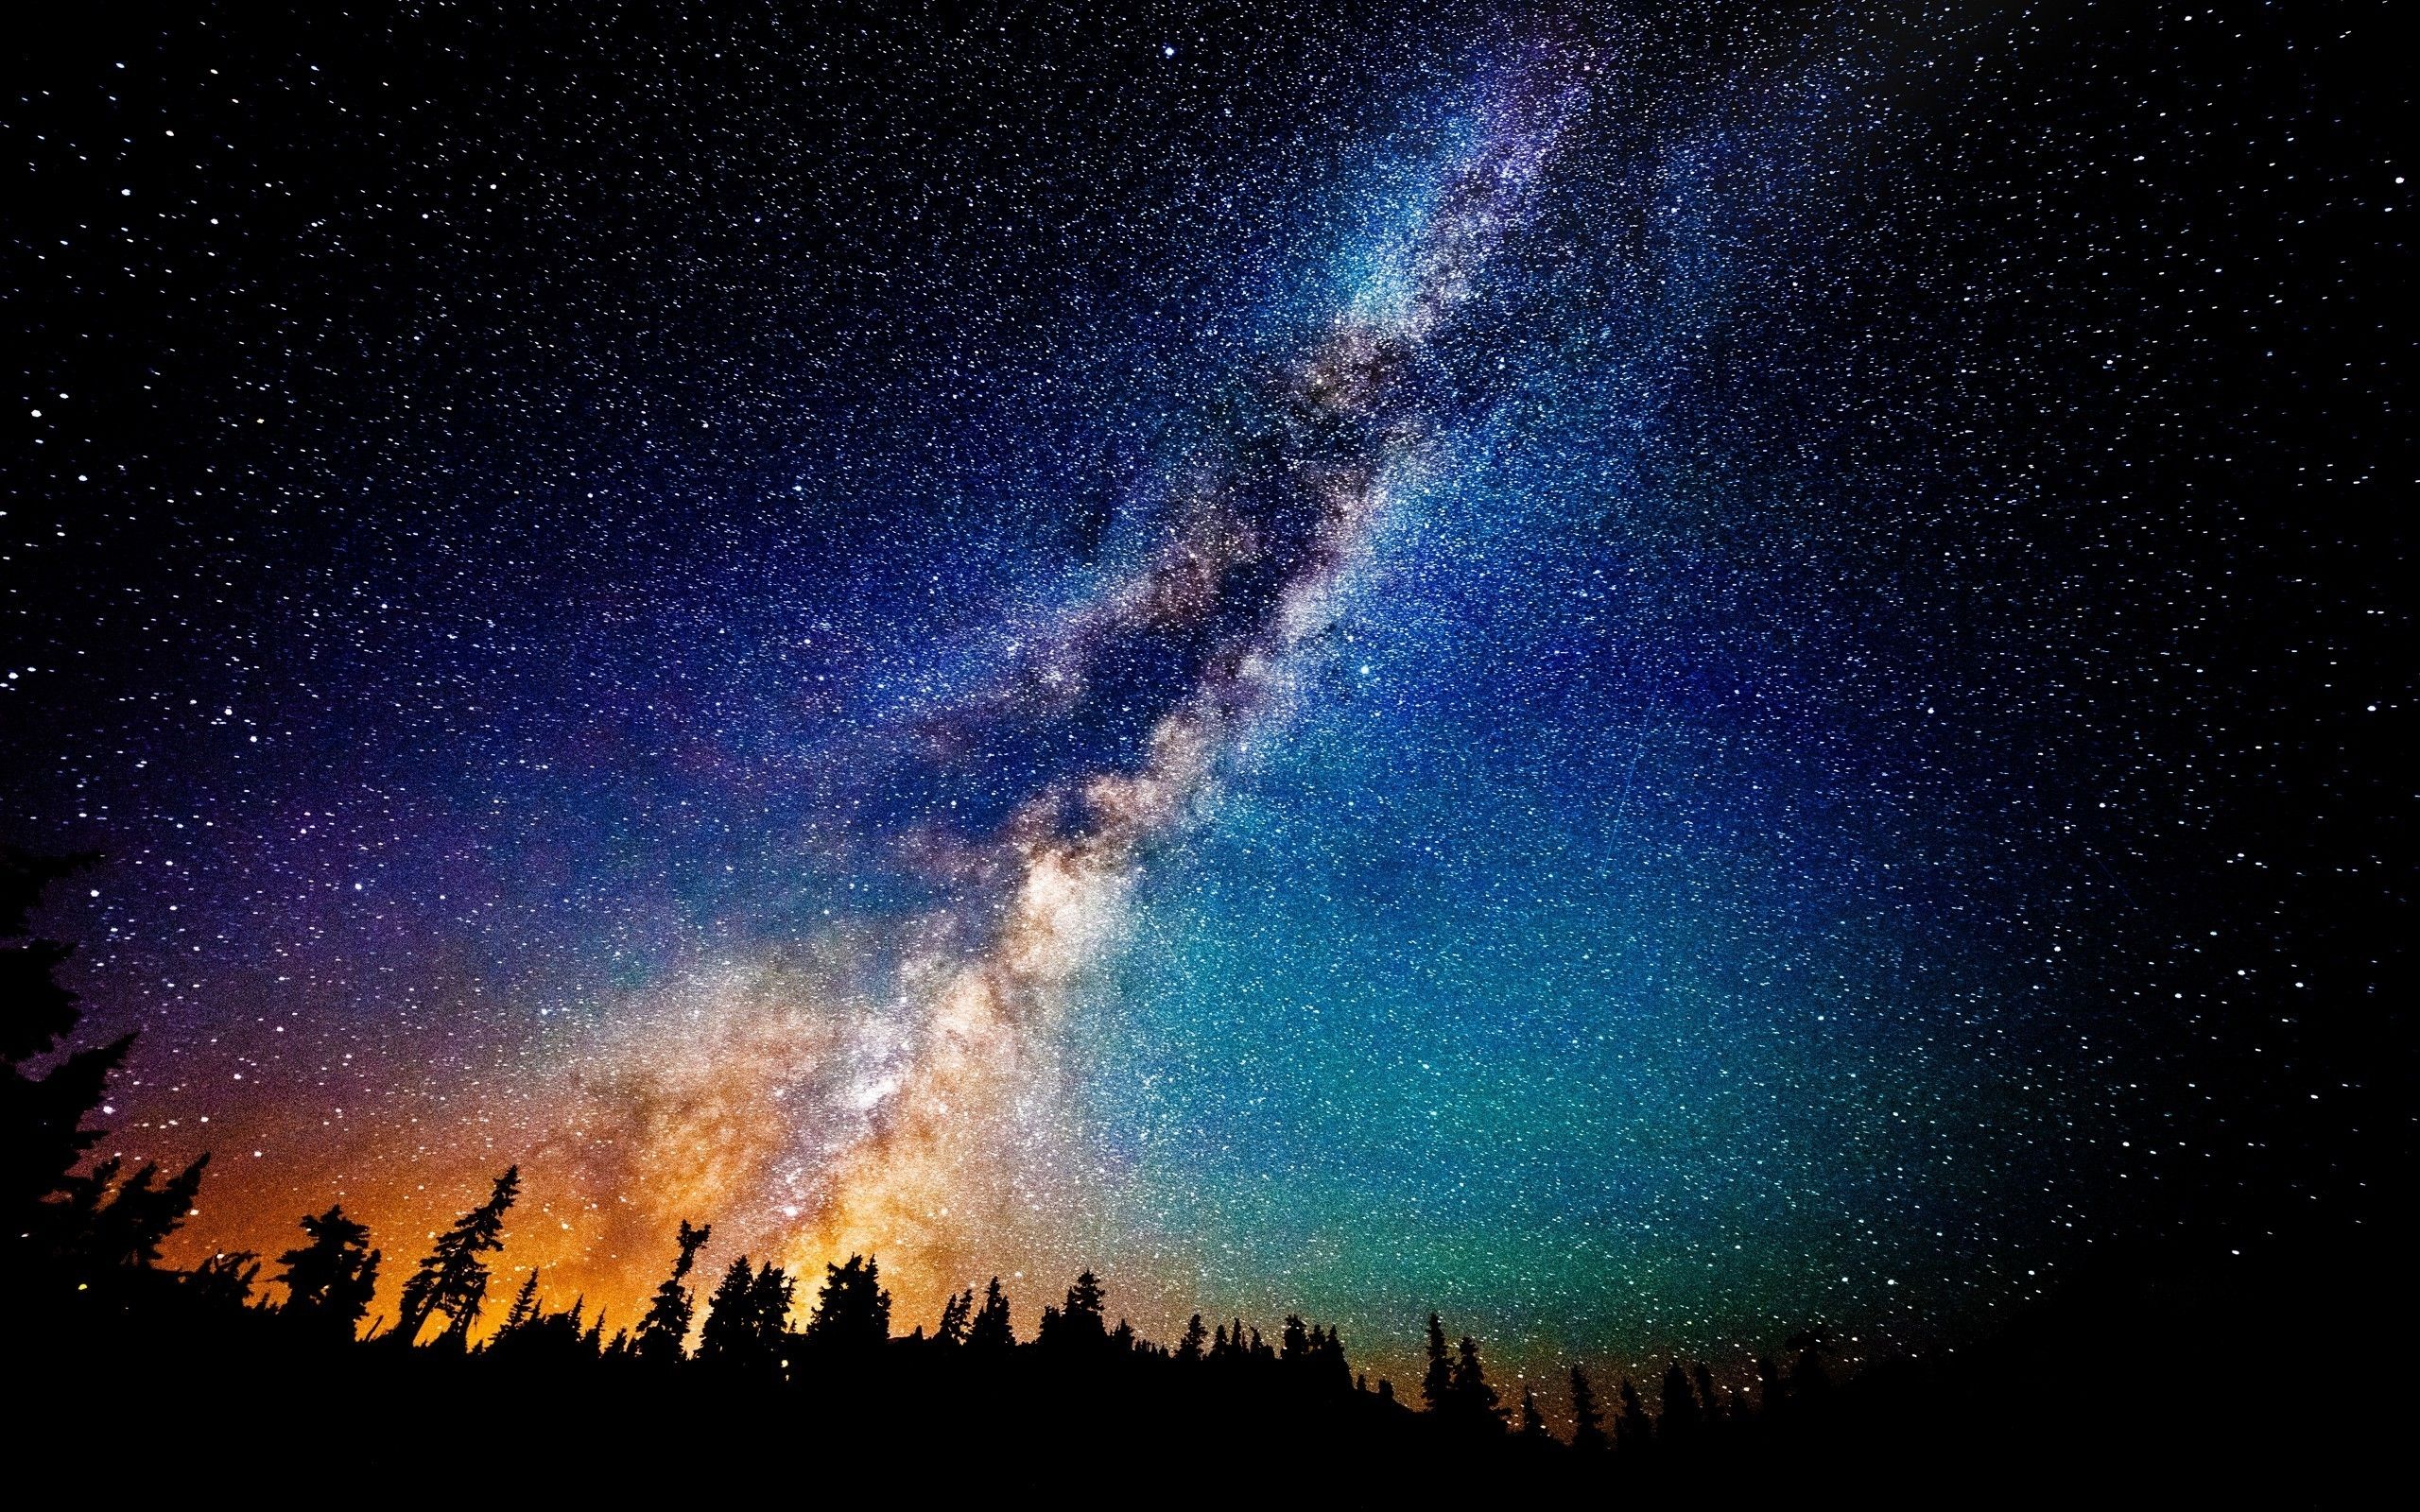 118 milky way hd wallpapers | background images - wallpaper abyss